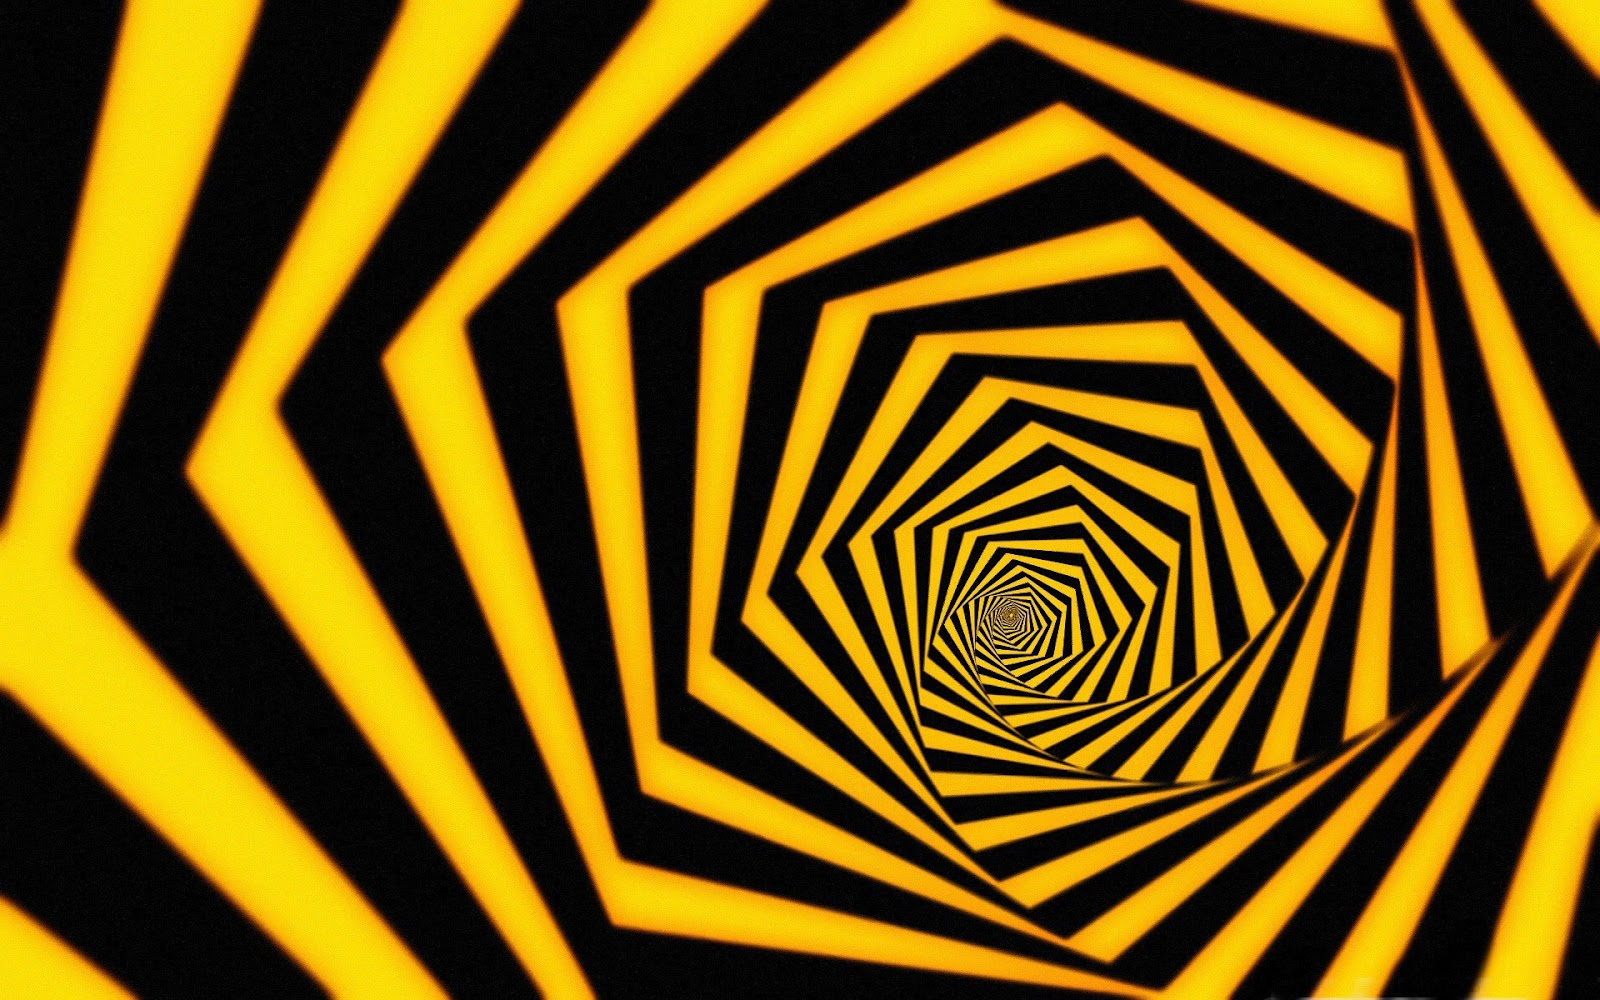 Wallpaper with an optical illusion stare at the image for 10-15